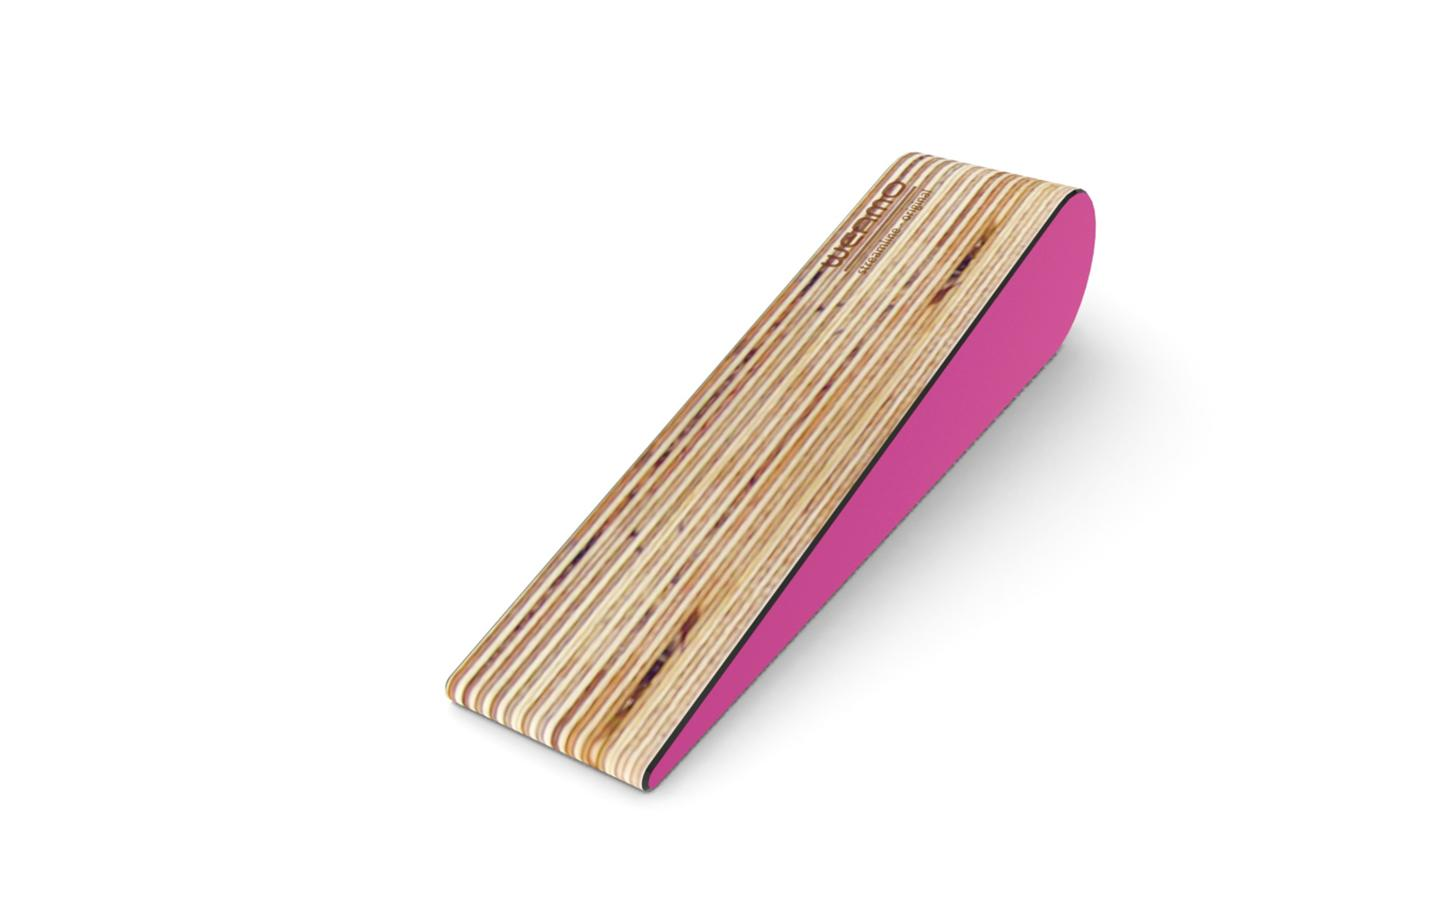 Streamline Original Doorstop - Pretty in Pink